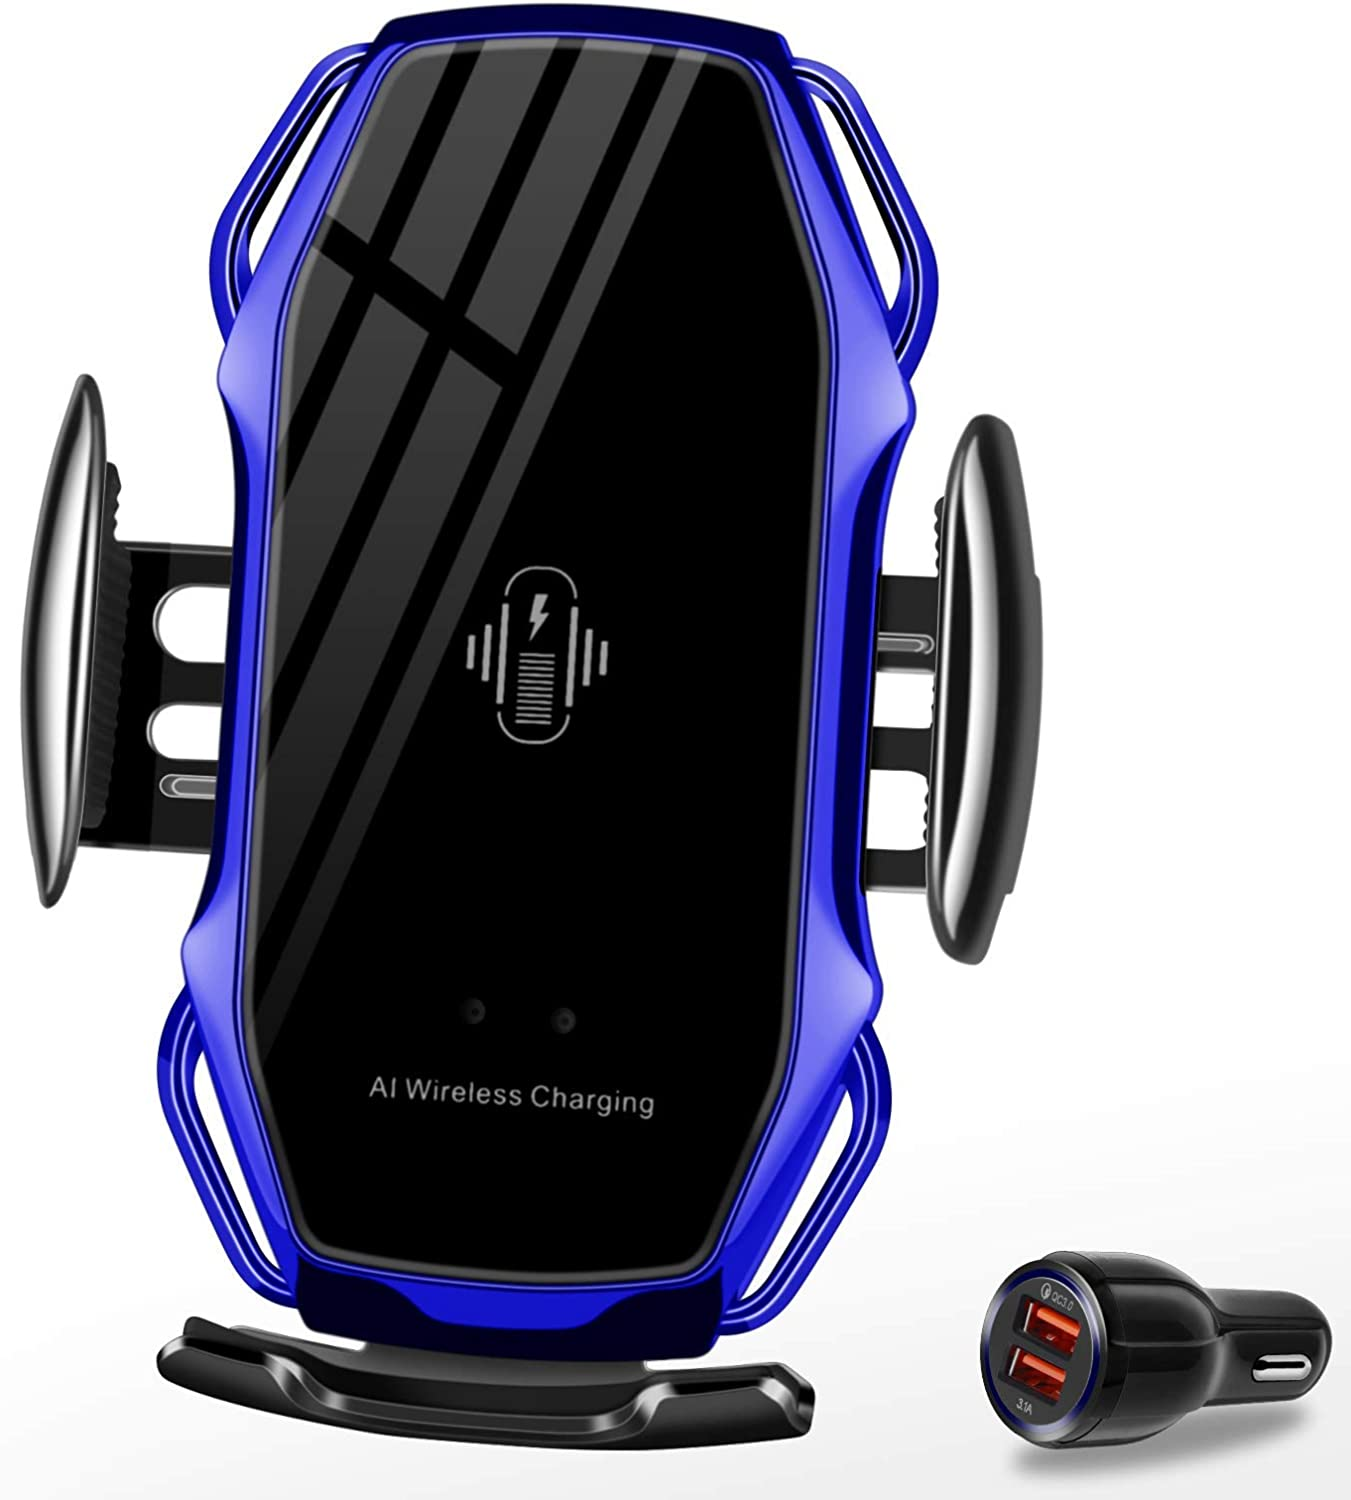 Wireless Charger Car Touch Sensing Automatic Retractable Clip Fast Charging Compatible for iPhone Xs Max/XR/X/8/8Plus Samsung S9/S8/Note 8